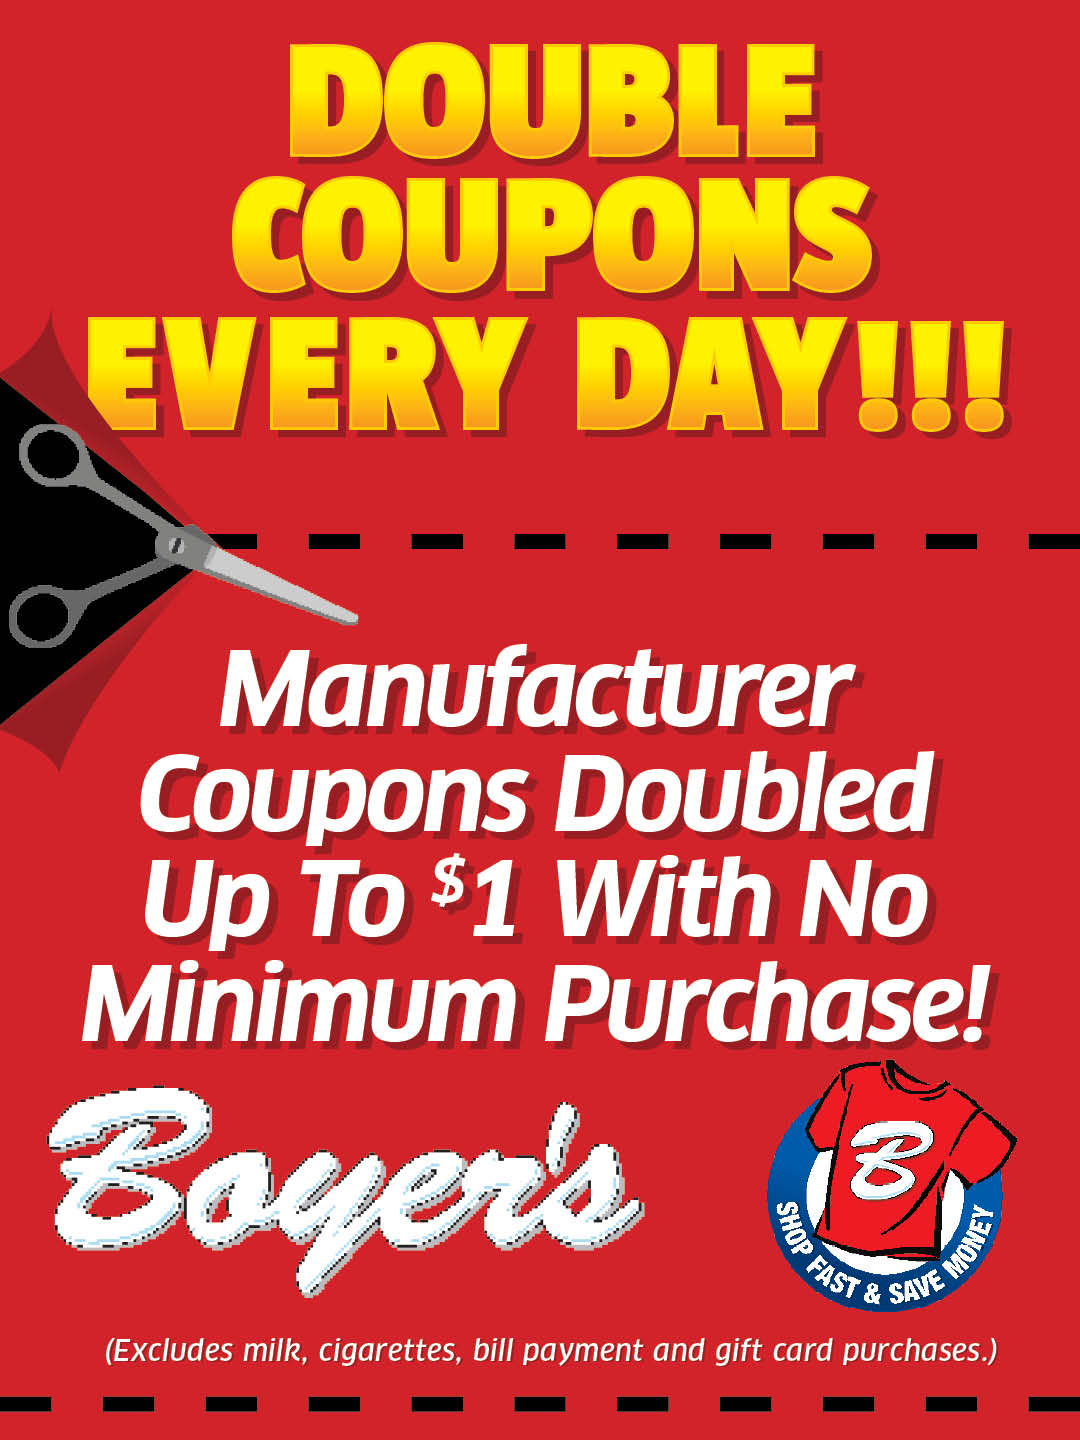 Double Coupons Every Day! Manufacturer coupons doubled up to $1 with no minimum purchase! Boyers. (Excludes milk, cigarettes, bill payment and gift card purchases.)